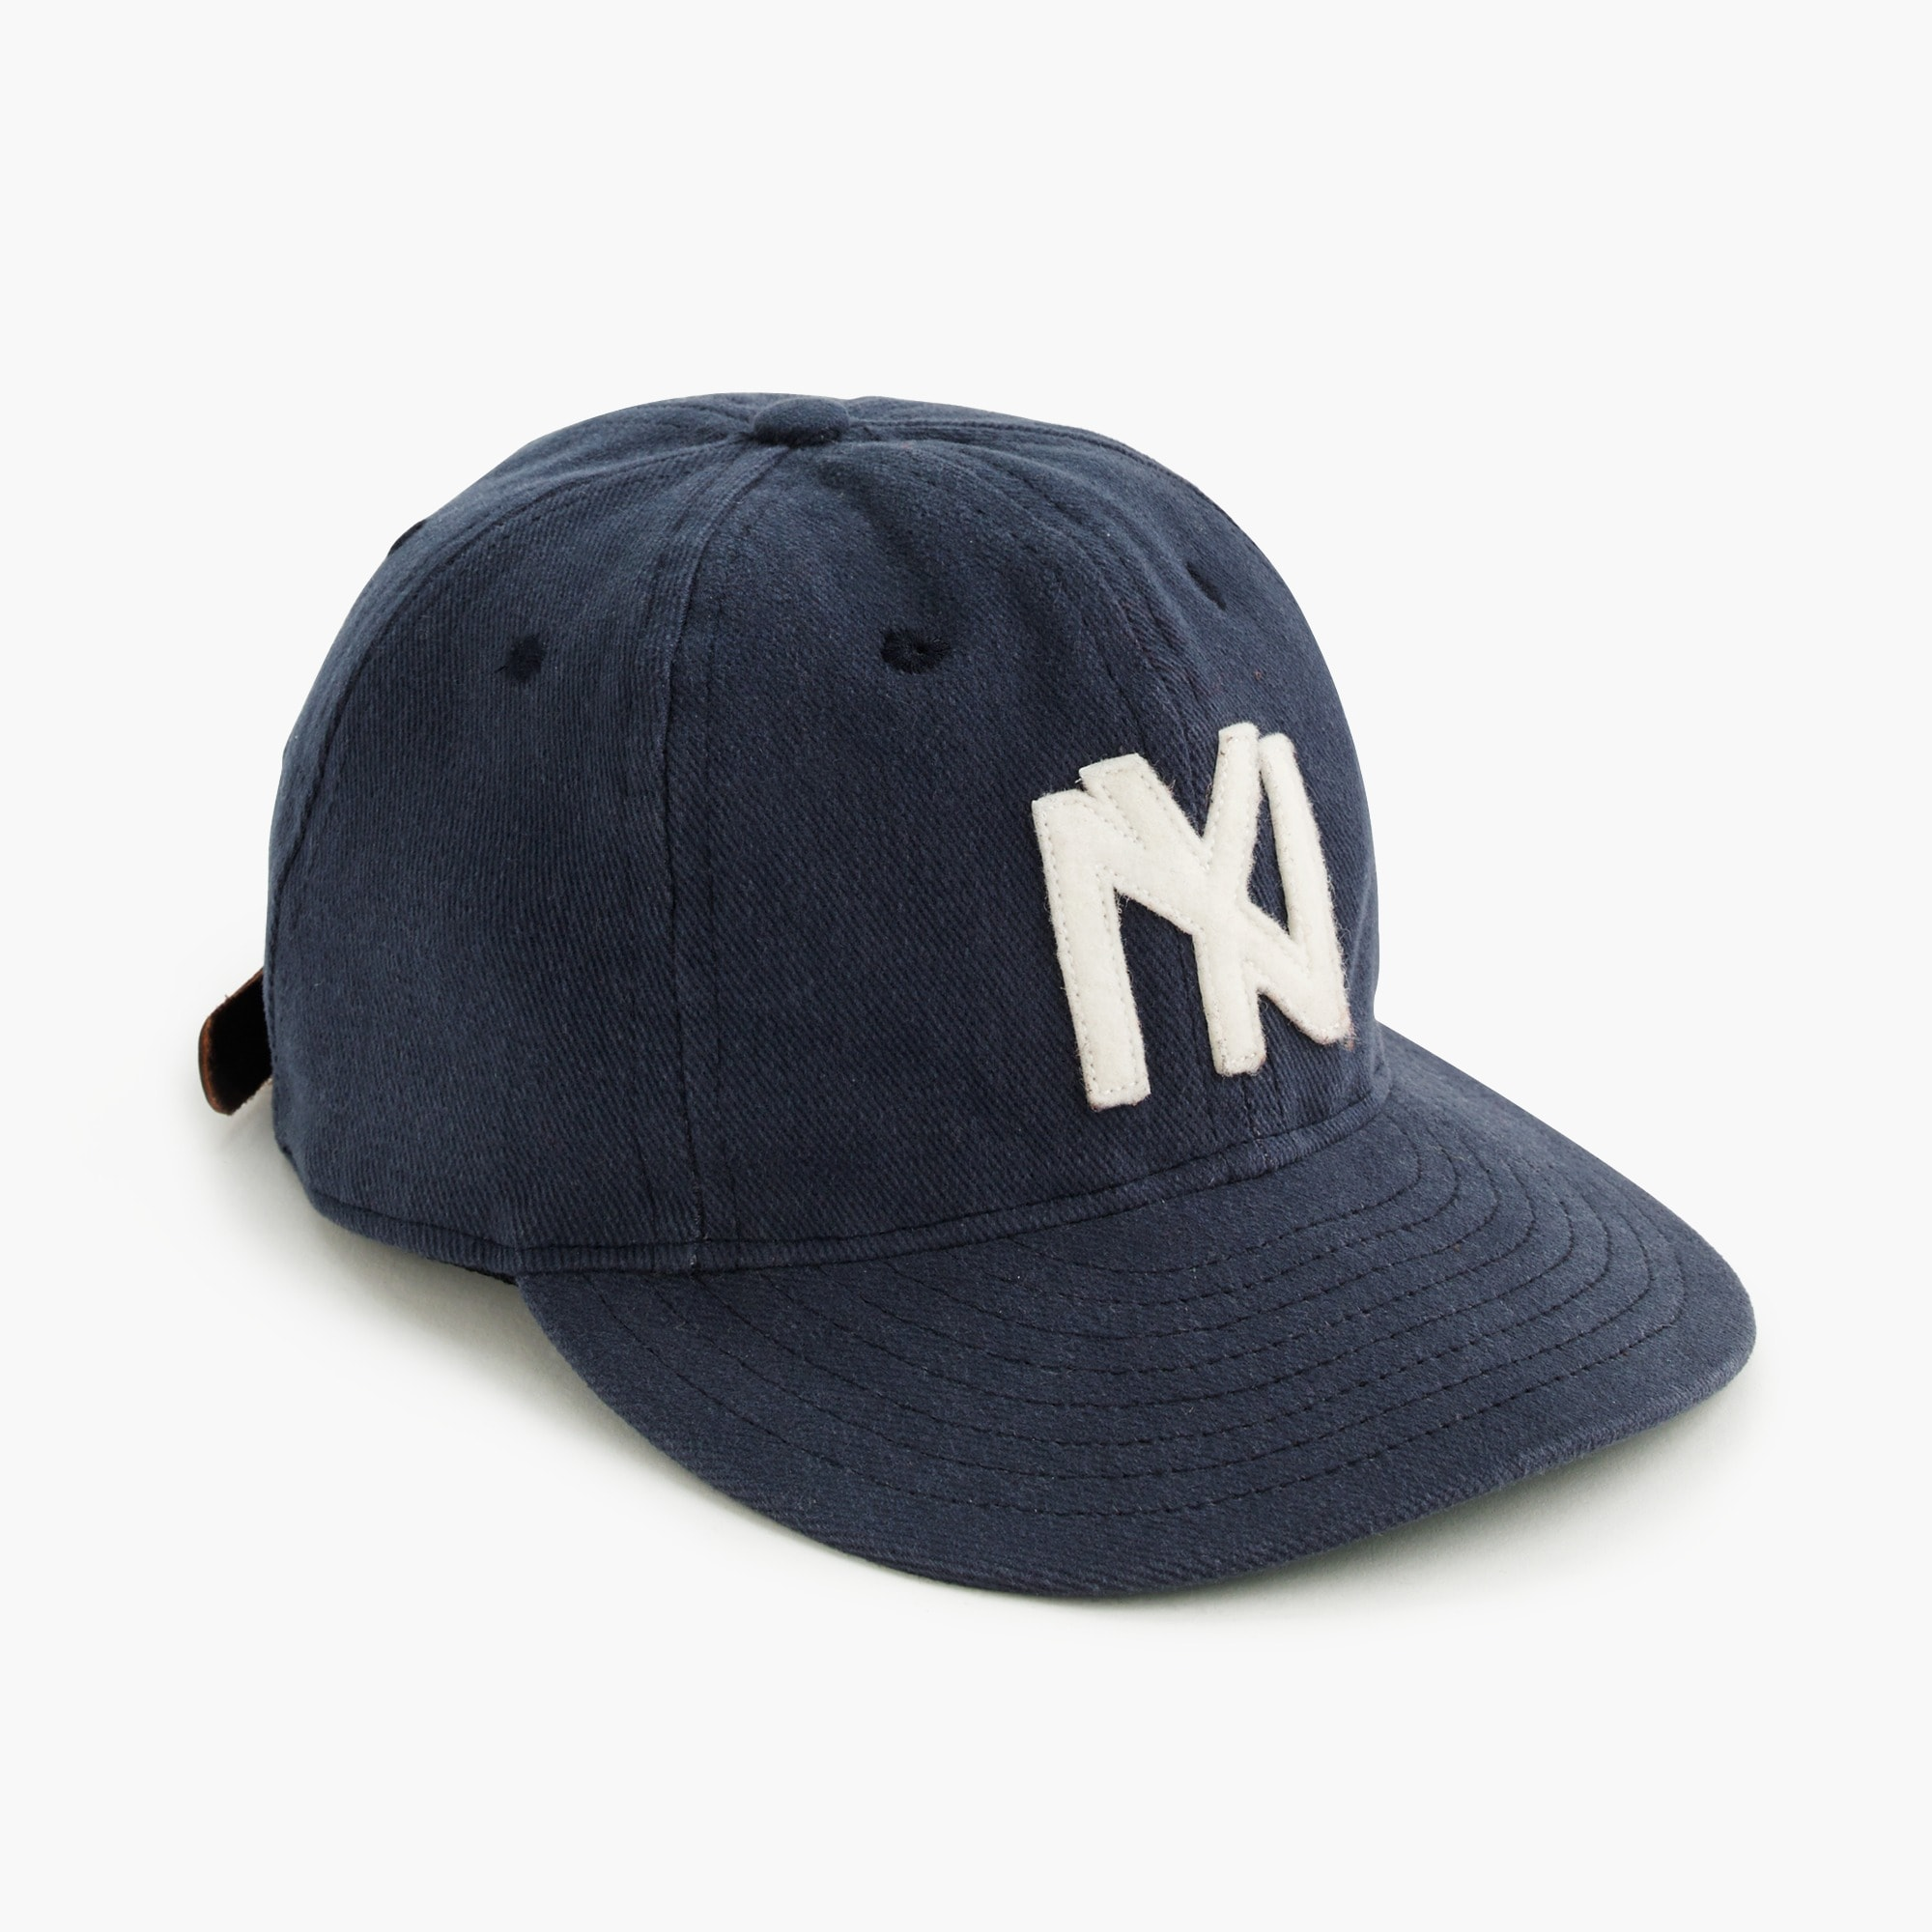 Ebbets Field Flannels® for J.Crew Brooklyn Eagles ball cap men accessories c